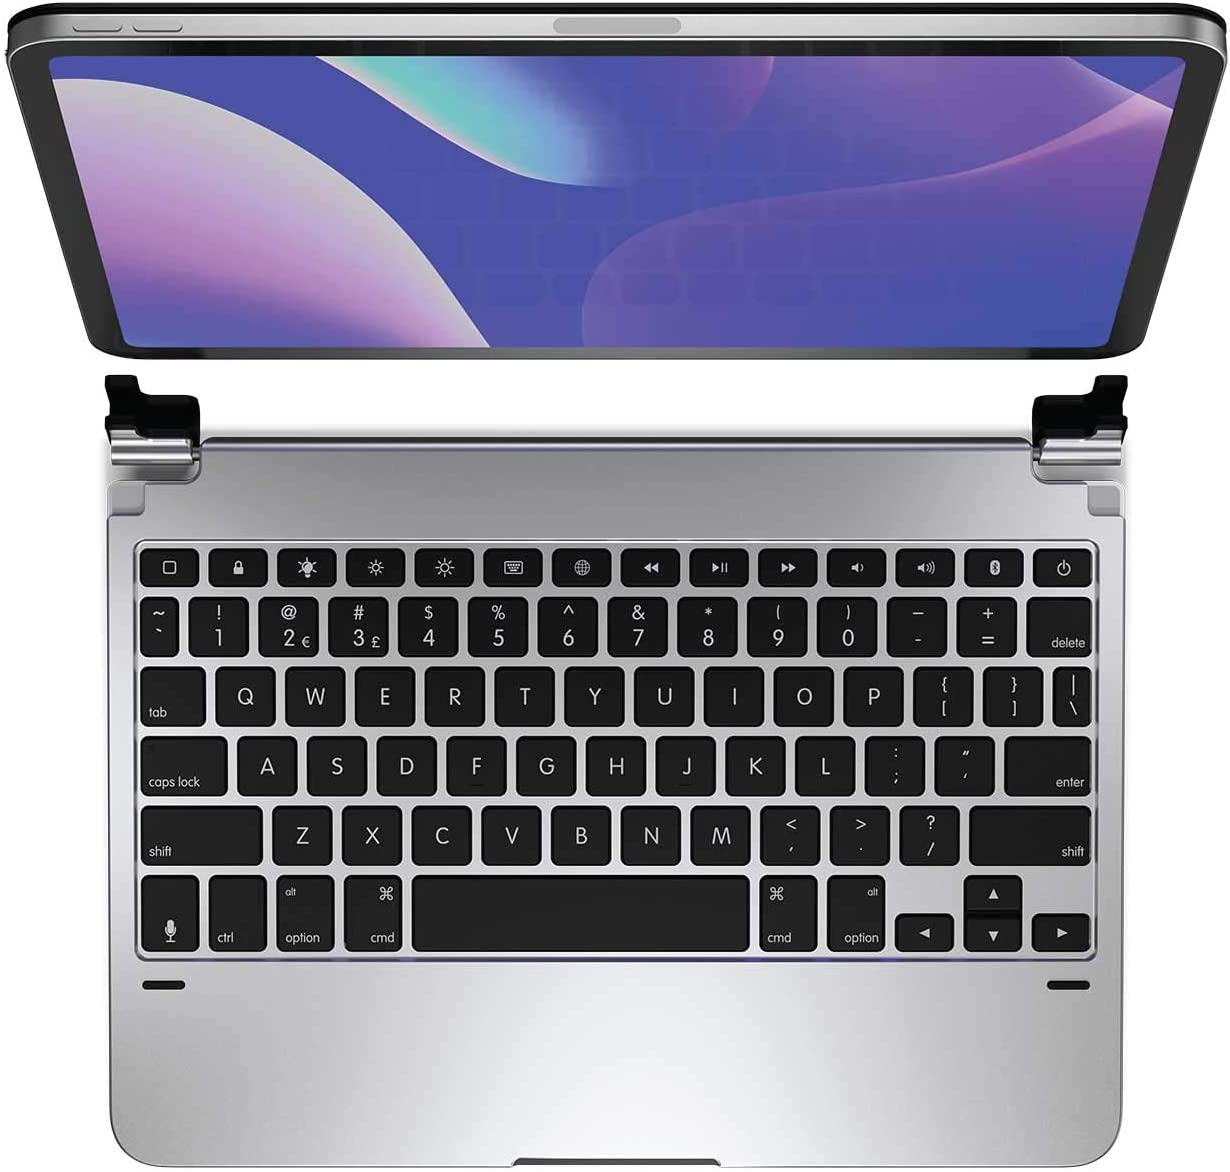 Brydge 11.0 Pro Wireless Keyboard | Compatible with iPad Pro 11-inch (2018) and iPad Air 4 (2020) | Backlit Keys | Long Battery Life | (Silver)